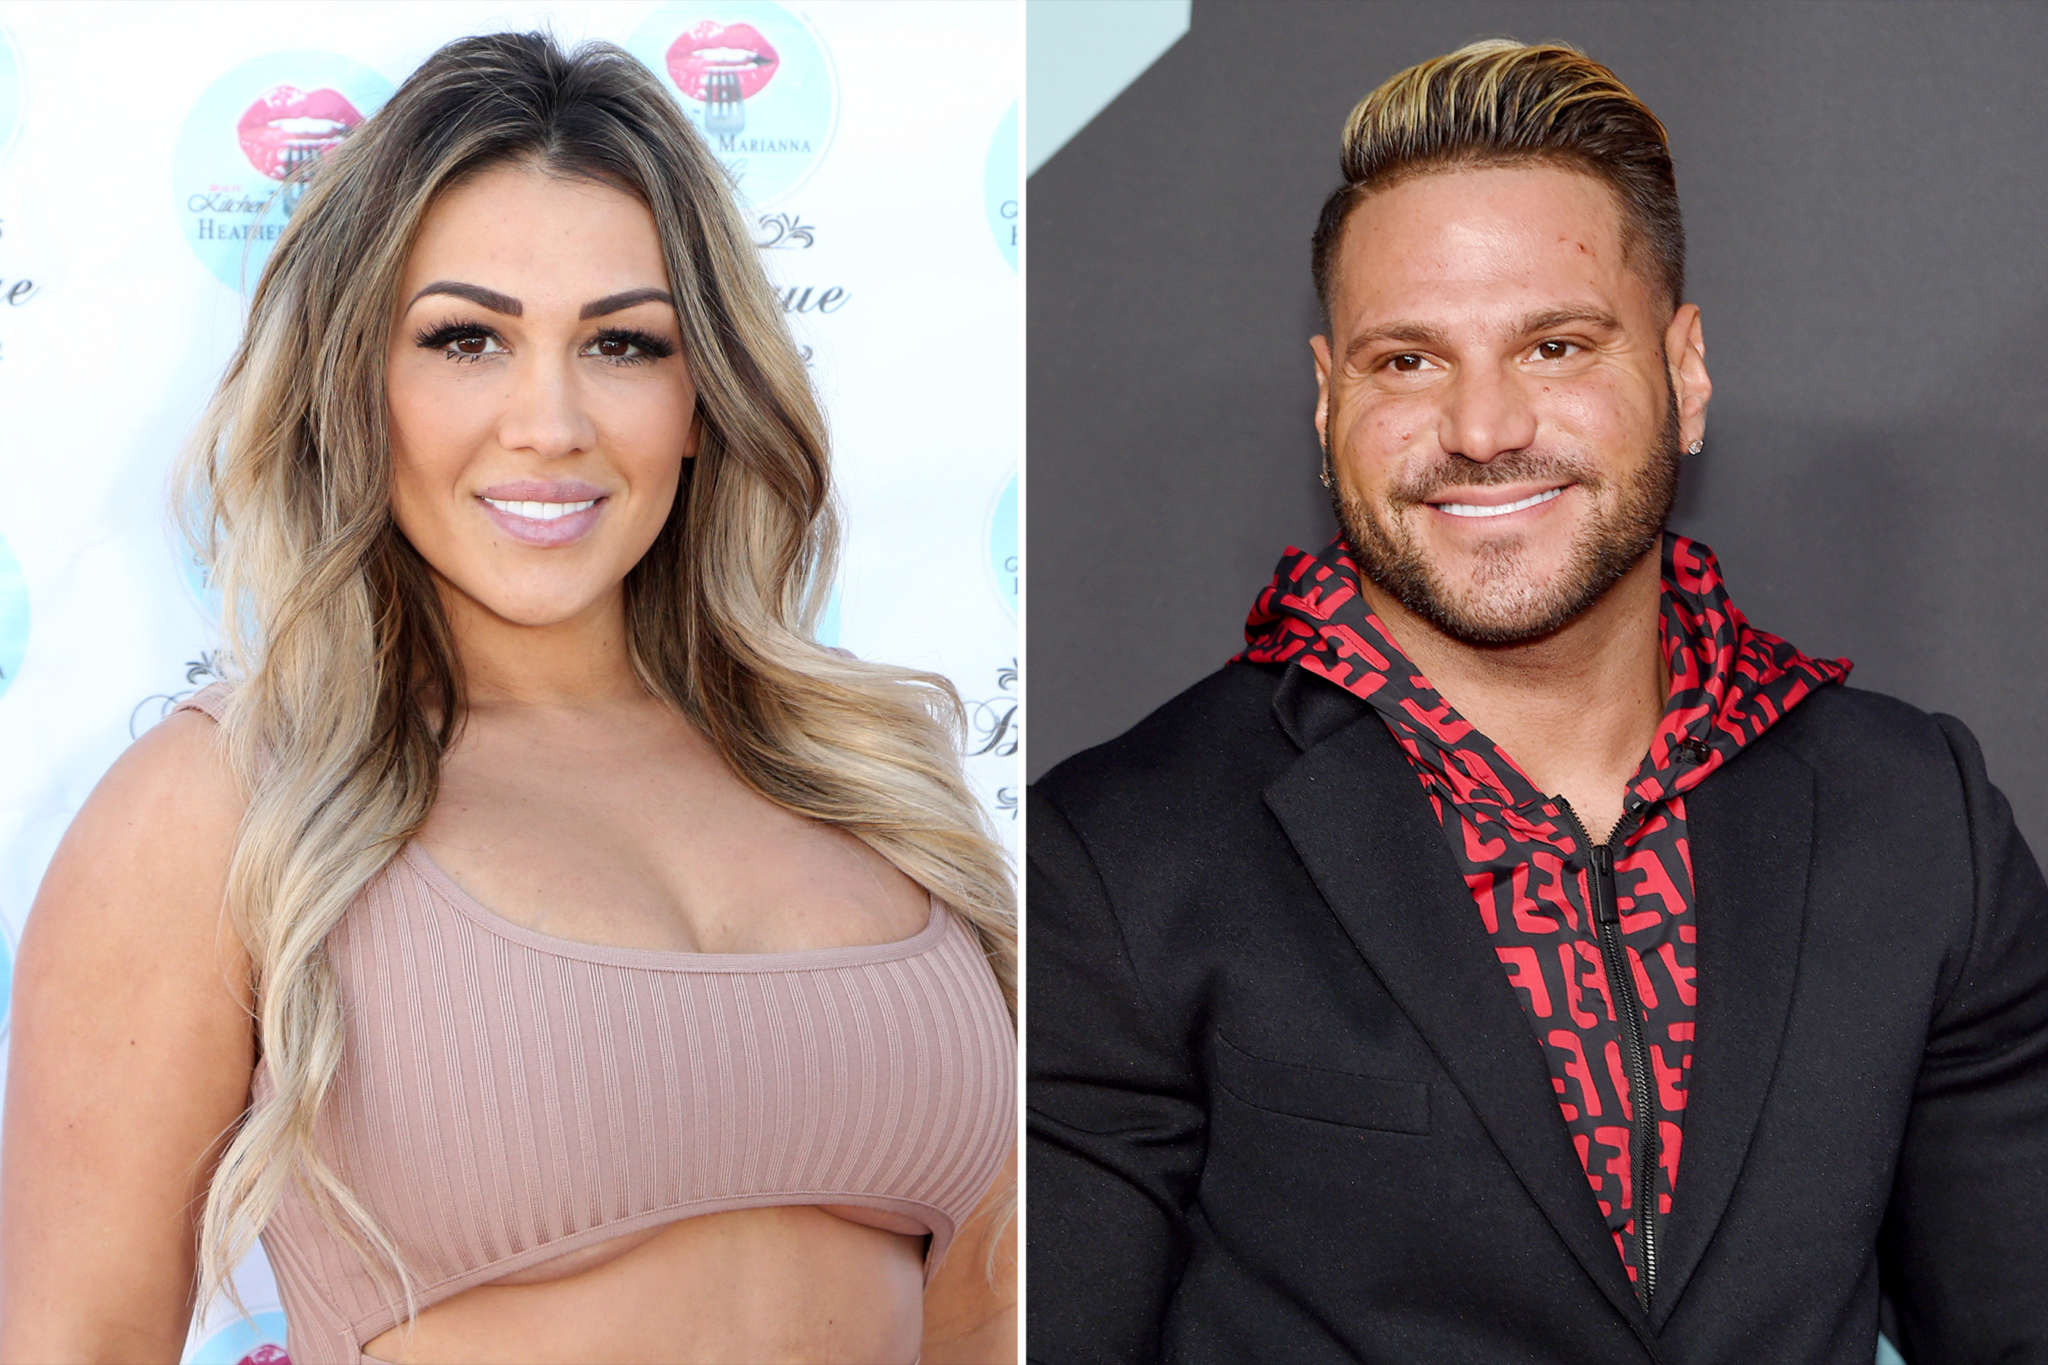 """jen-harley-calls-ronnie-ortiz-magro-out-for-cheating-with-her-friend-and-more"""